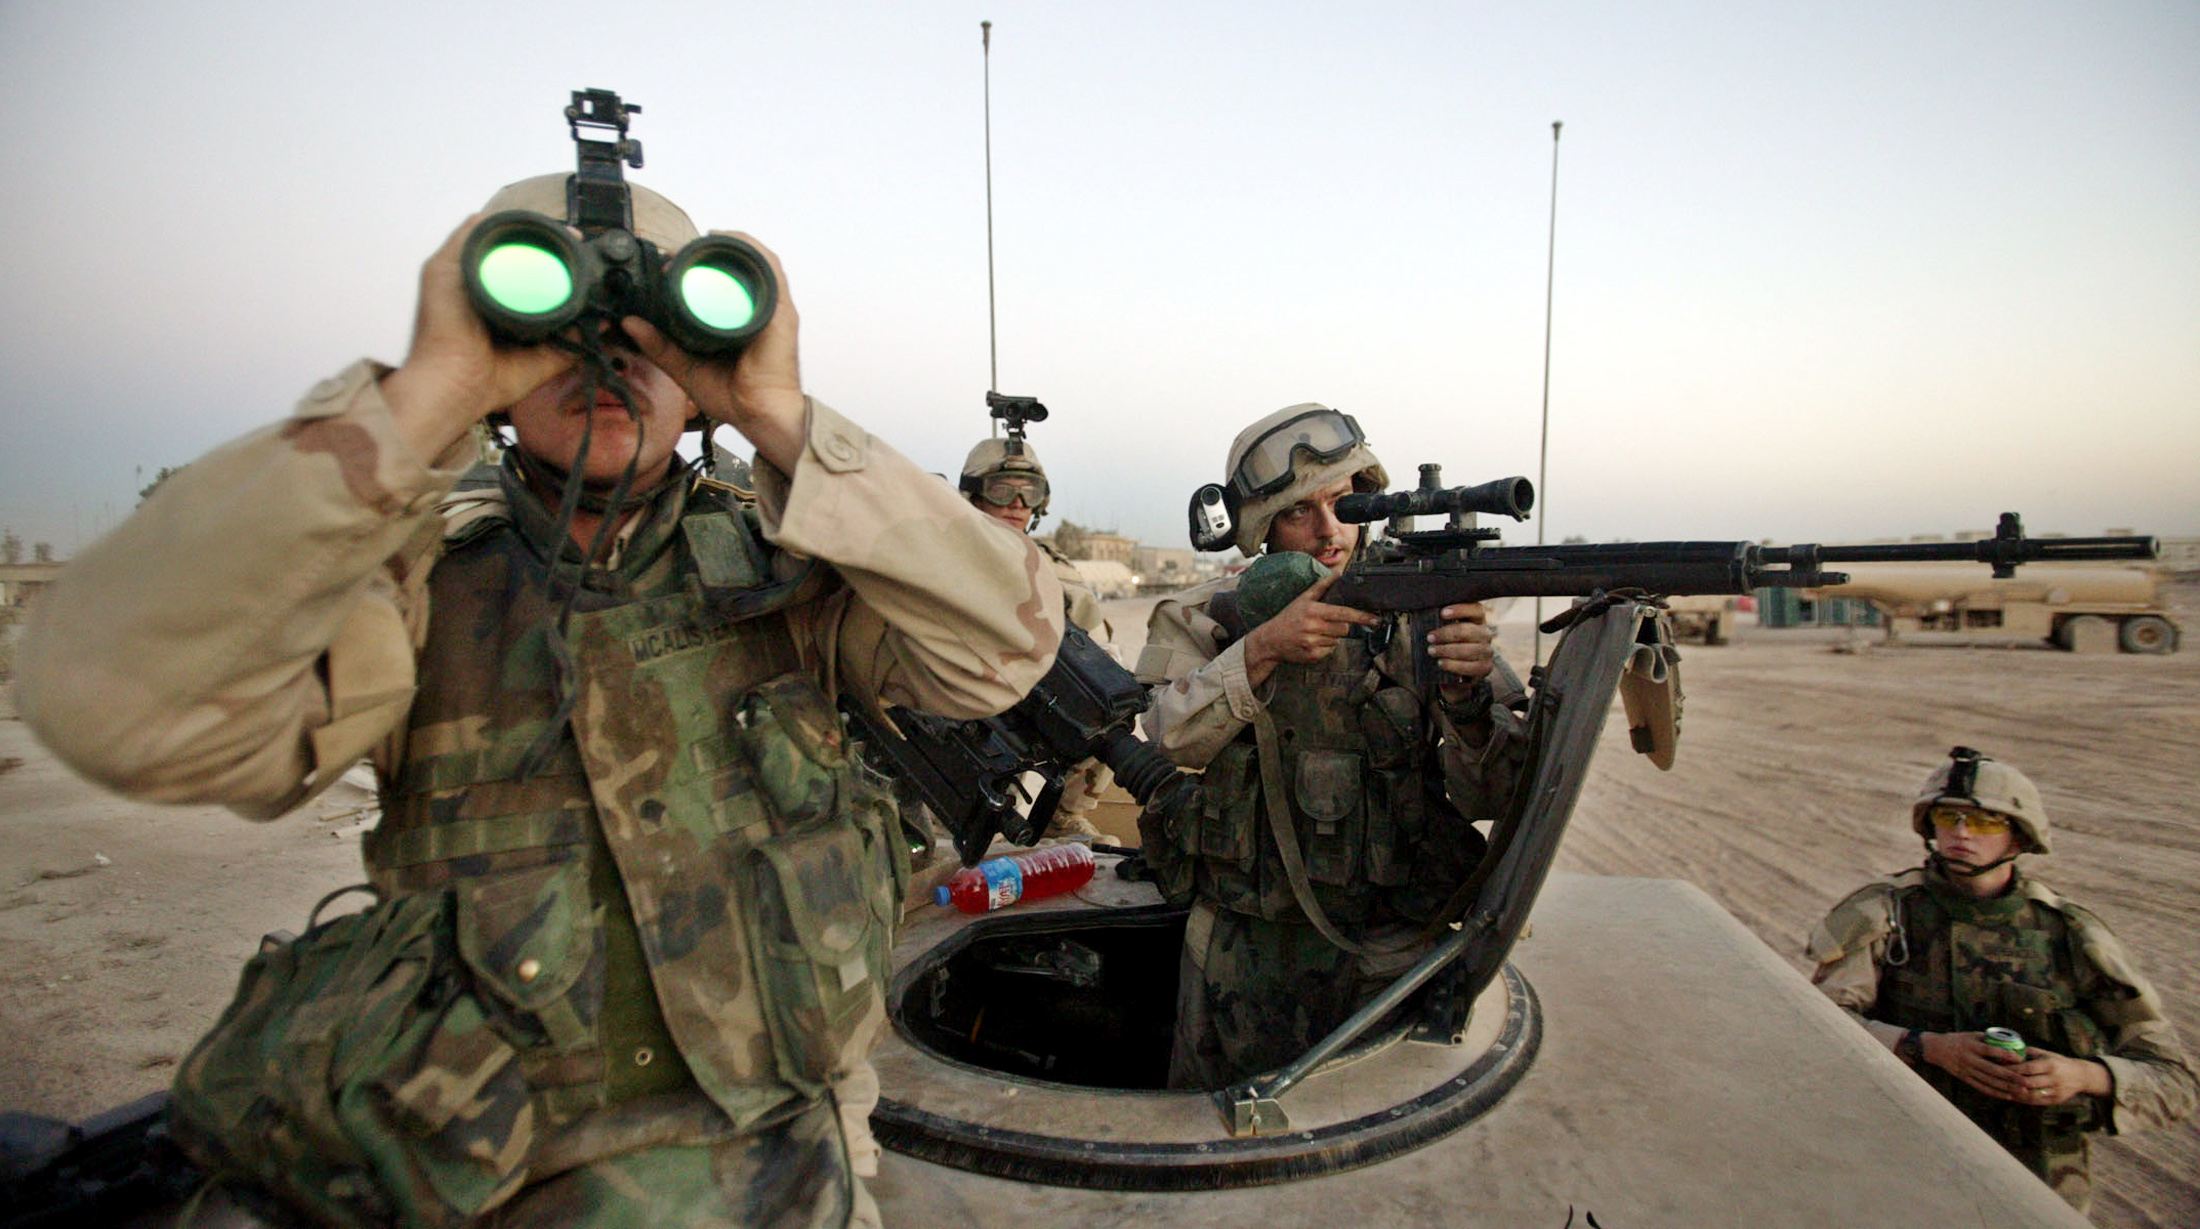 A U.S. Army sniper takes aim at a suspected enemy observer at Camp Eagle in the Baghdad suburb of Sadr City on Aug. 16, 2004. Photo by David P. Gilkey/ Pool via Reuters